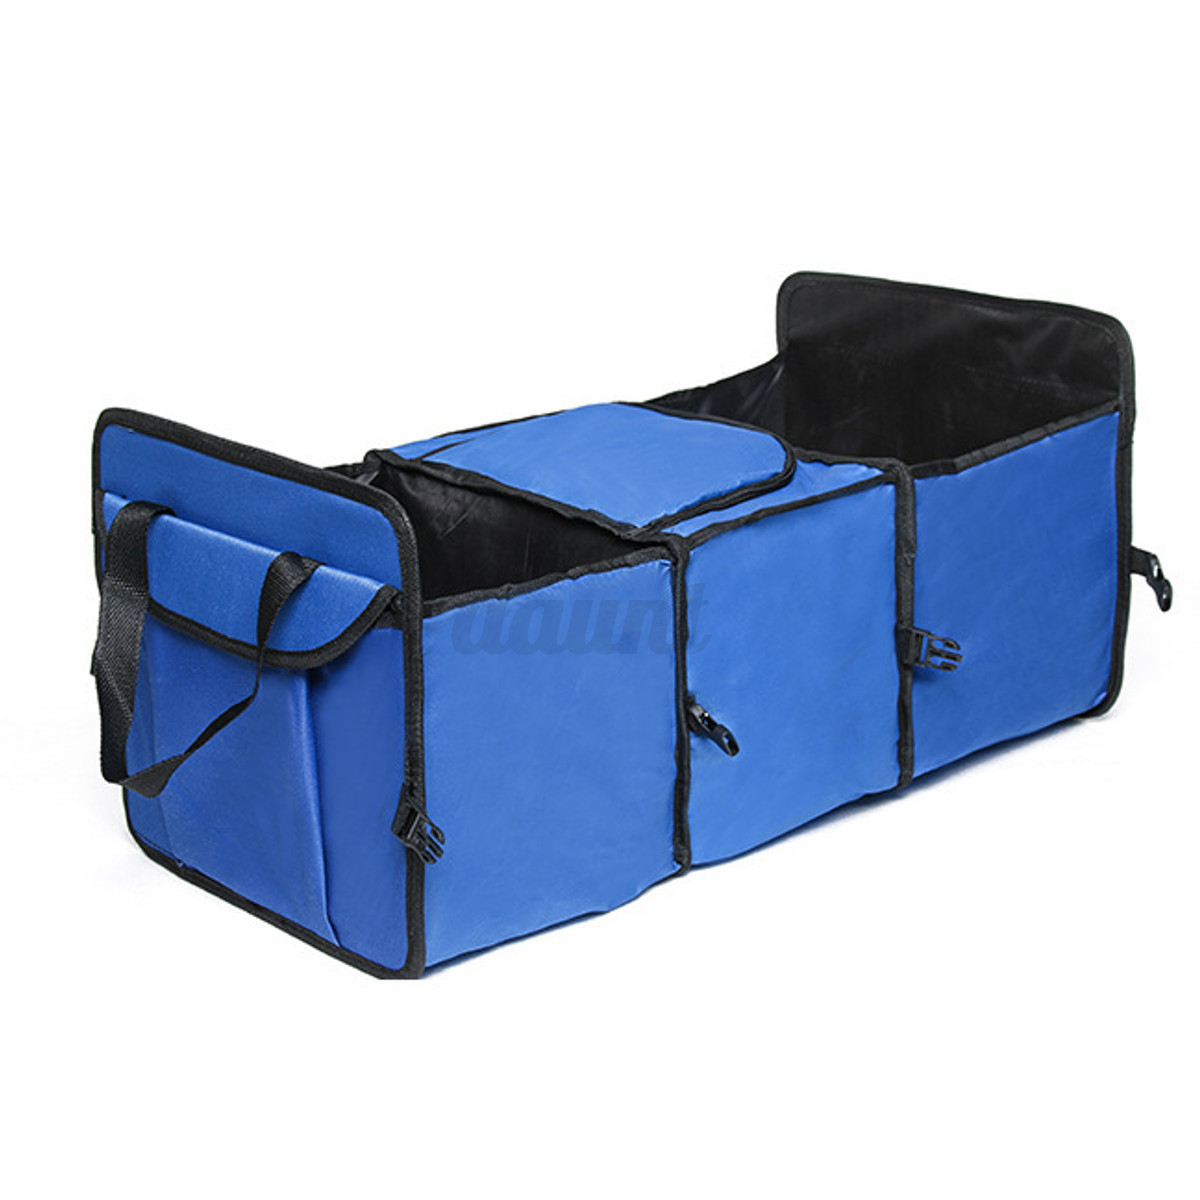 Foldable cartrunk organizer with cooler 2